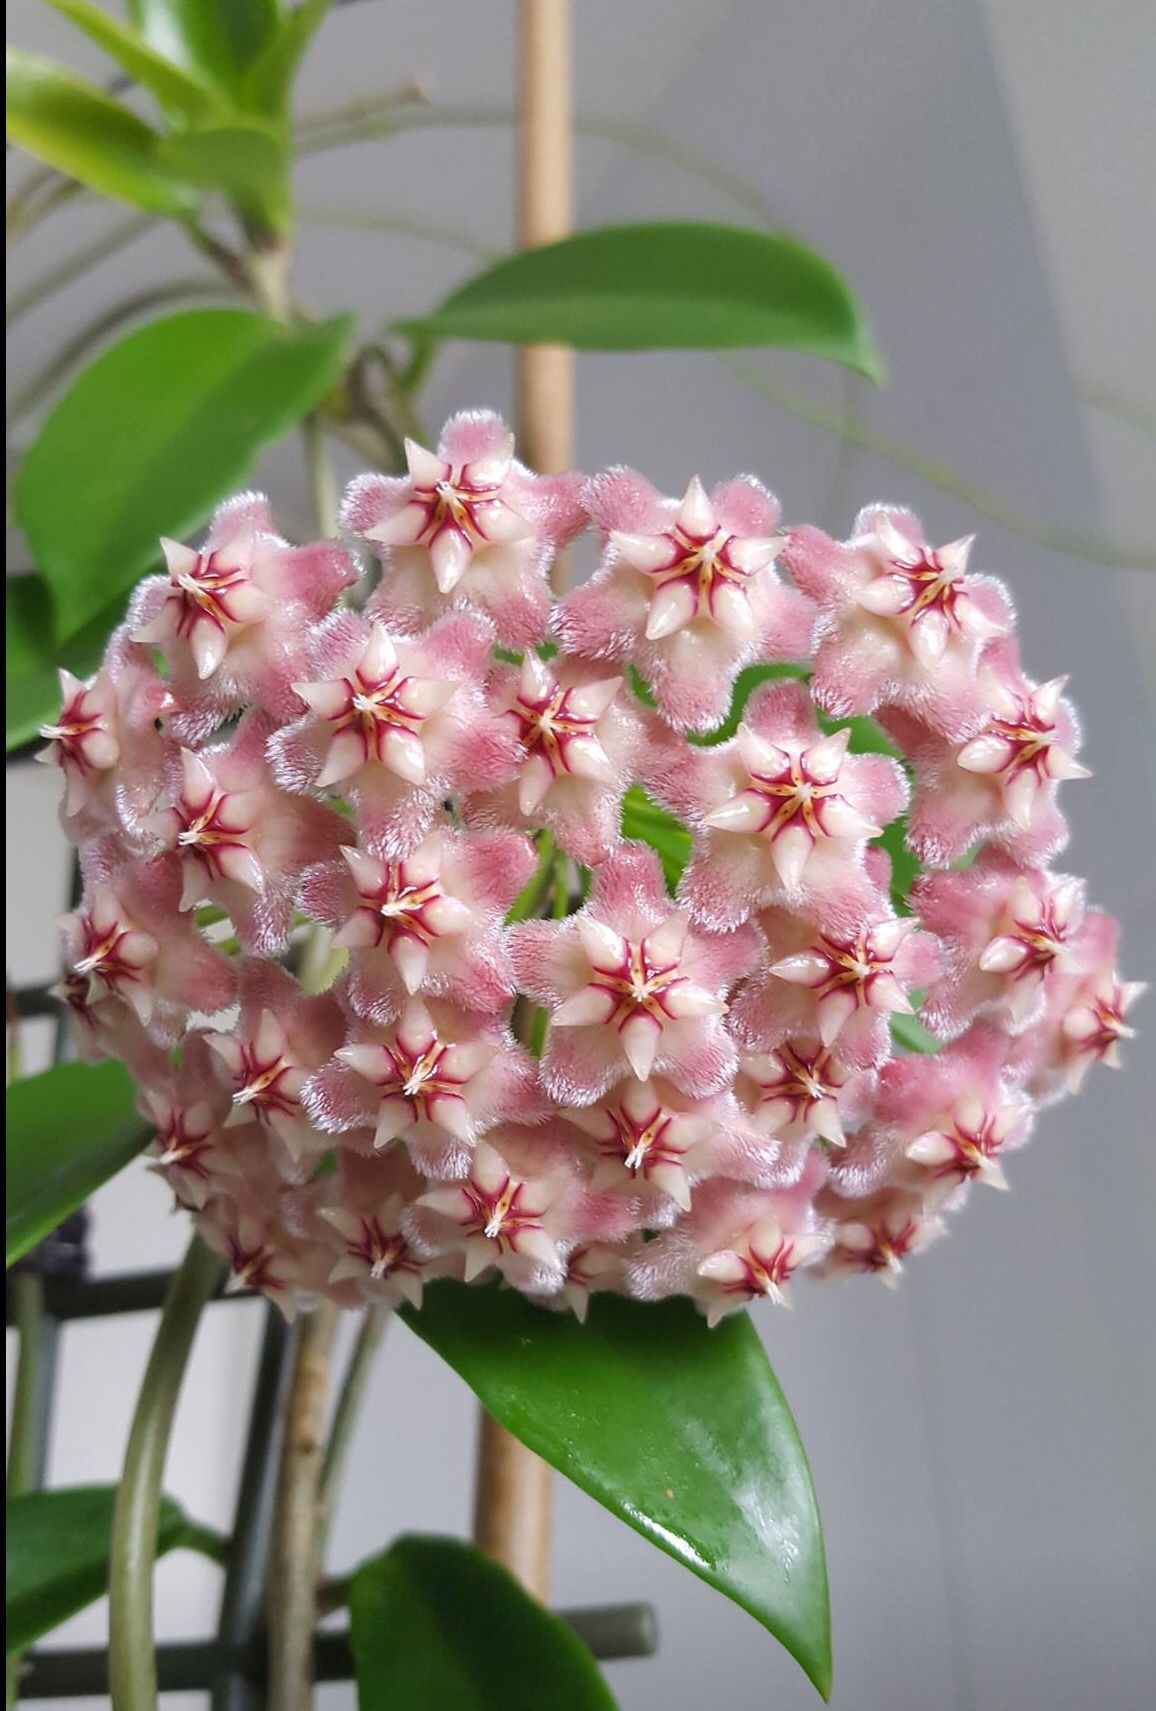 Hoya Pubicalyx Pink Dragon Just Opened Her Flowers Happy Hoyas